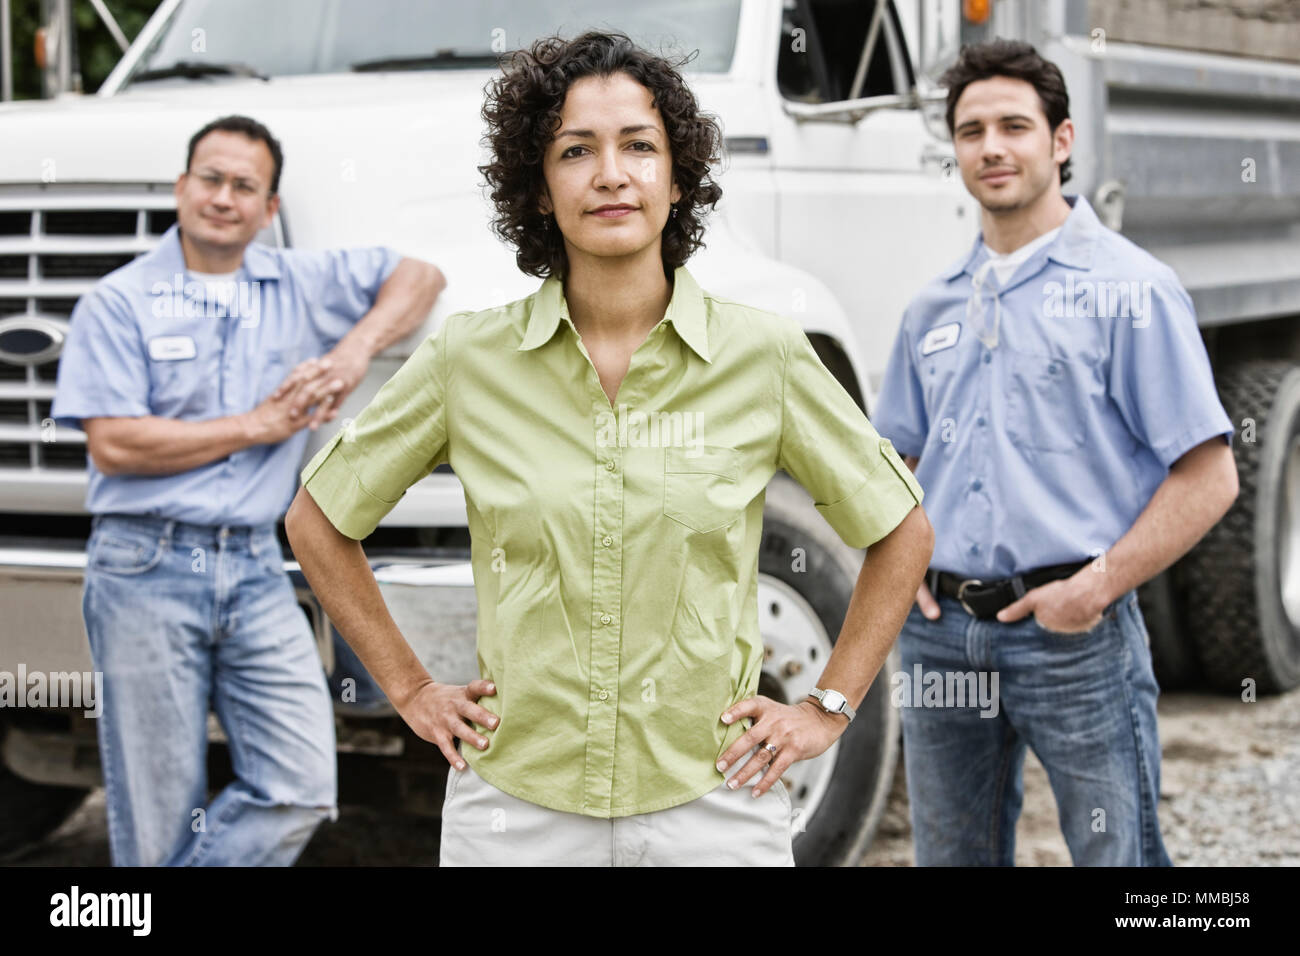 Mixed race team of workers at a landscape company with a woman in the lead. - Stock Image